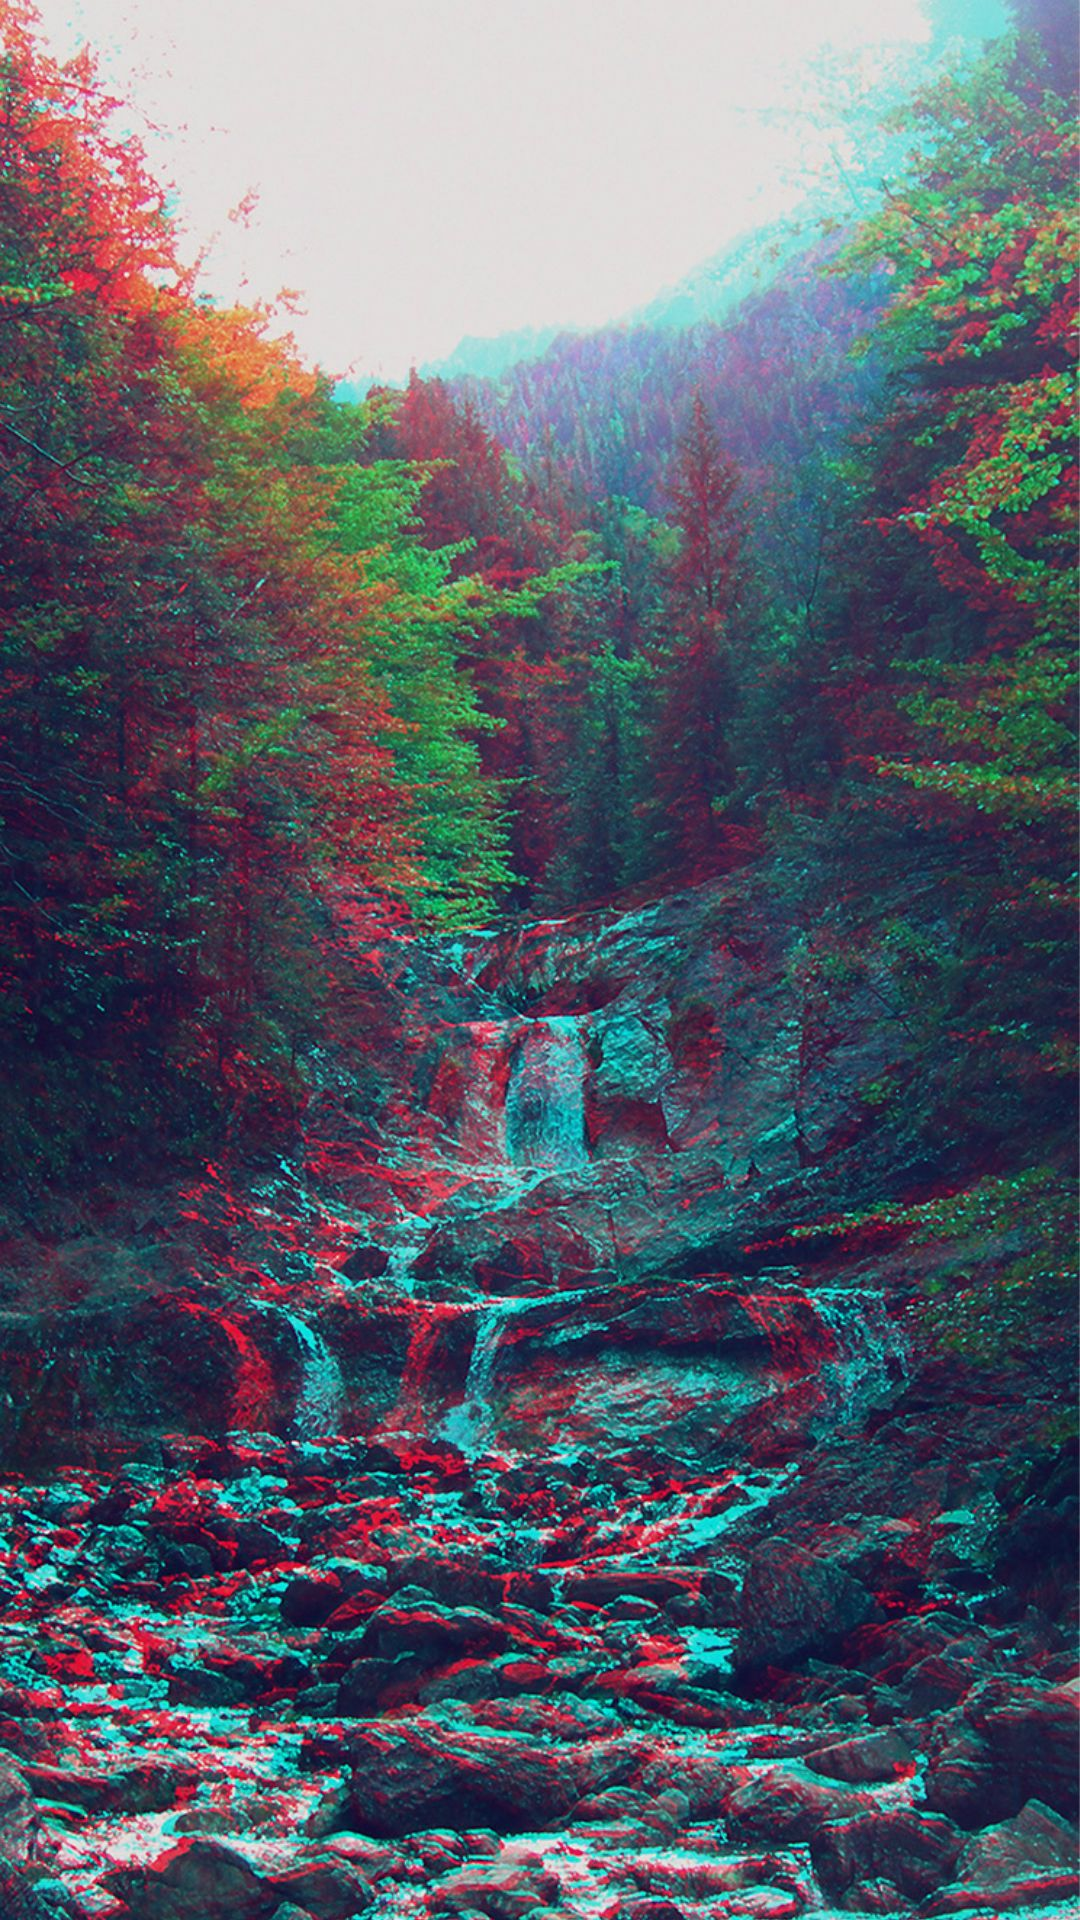 Anaglyph Mountain Green Nature Art Iphone 7 Wallpaper Glitch Wallpaper Hippie Wallpaper Trippy Backgrounds